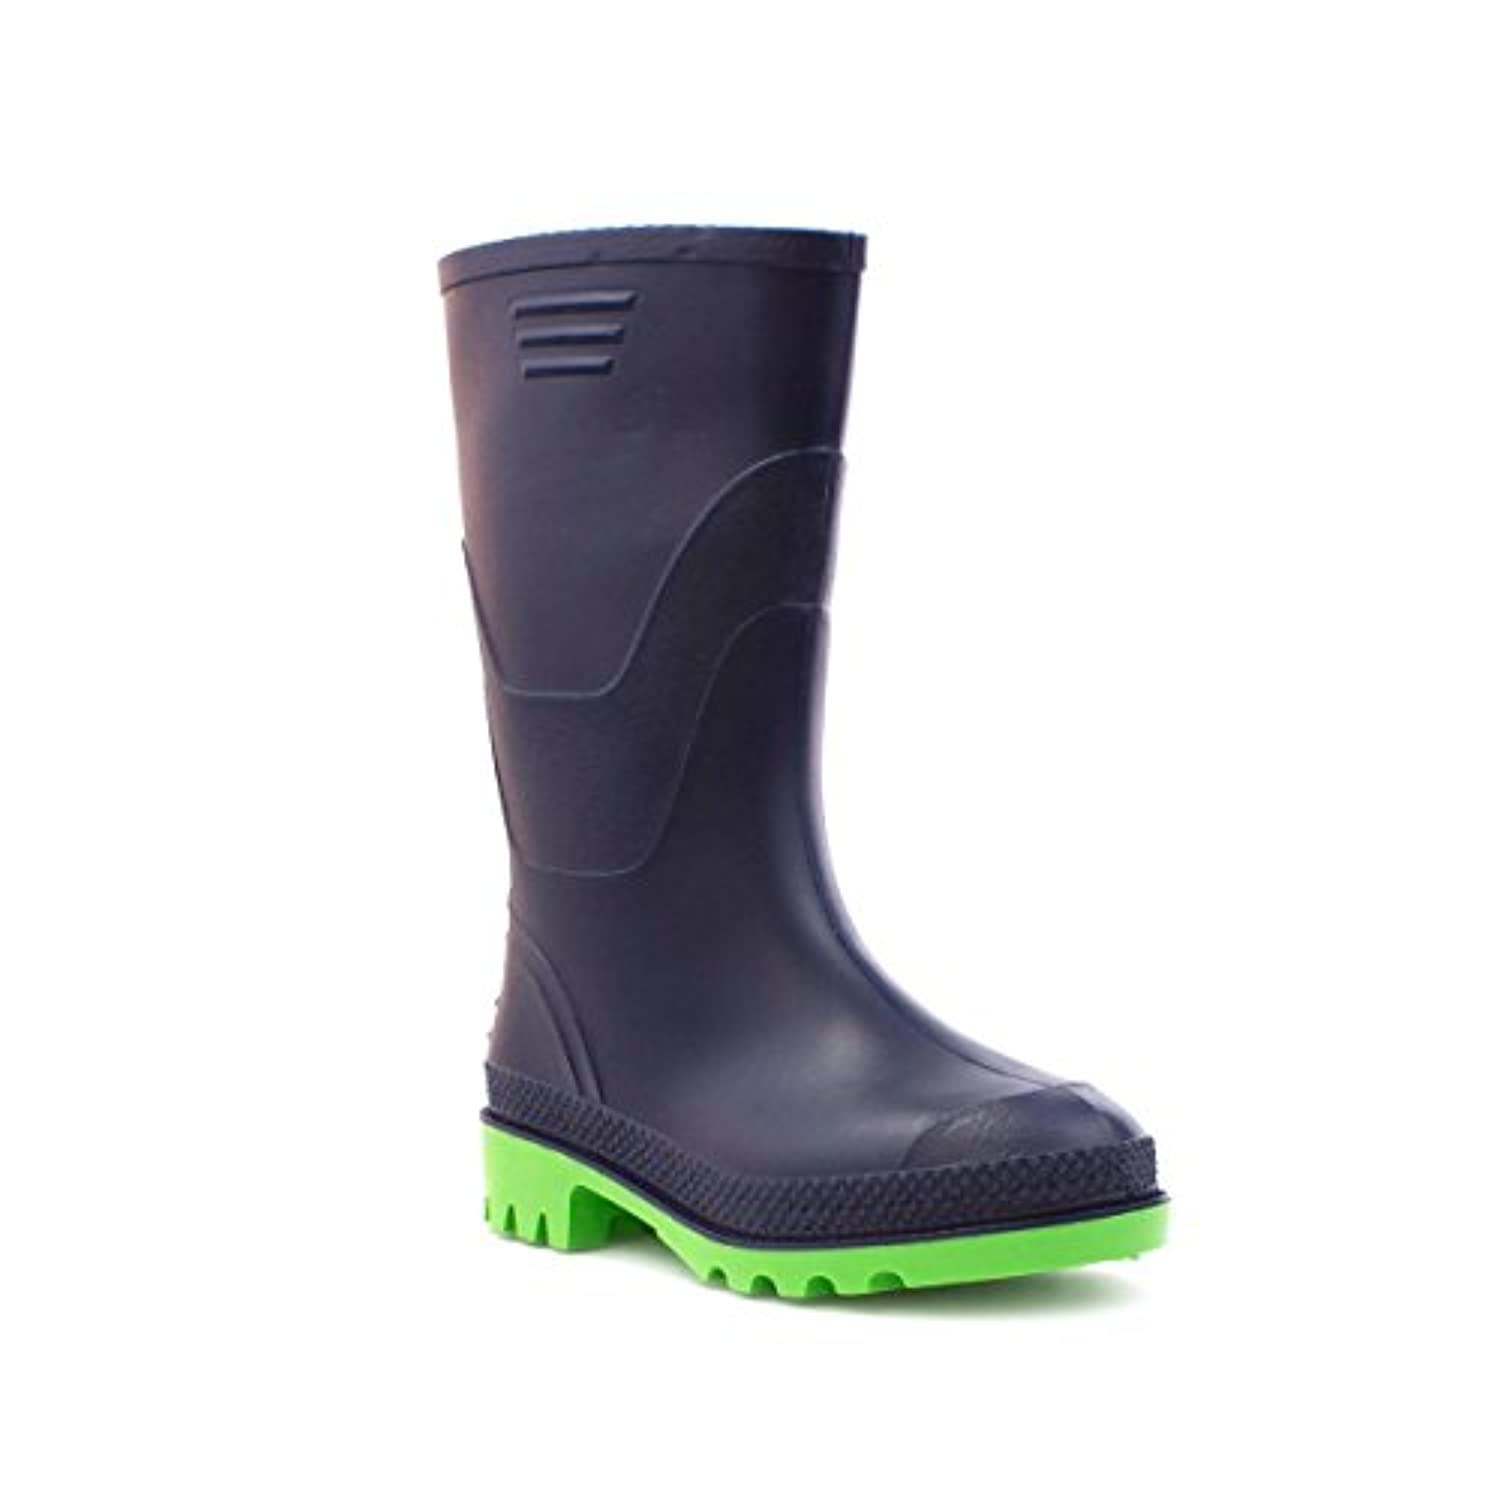 Zone - Kids Wellington Boots in Navy and Green - Size 1 - Multicolour